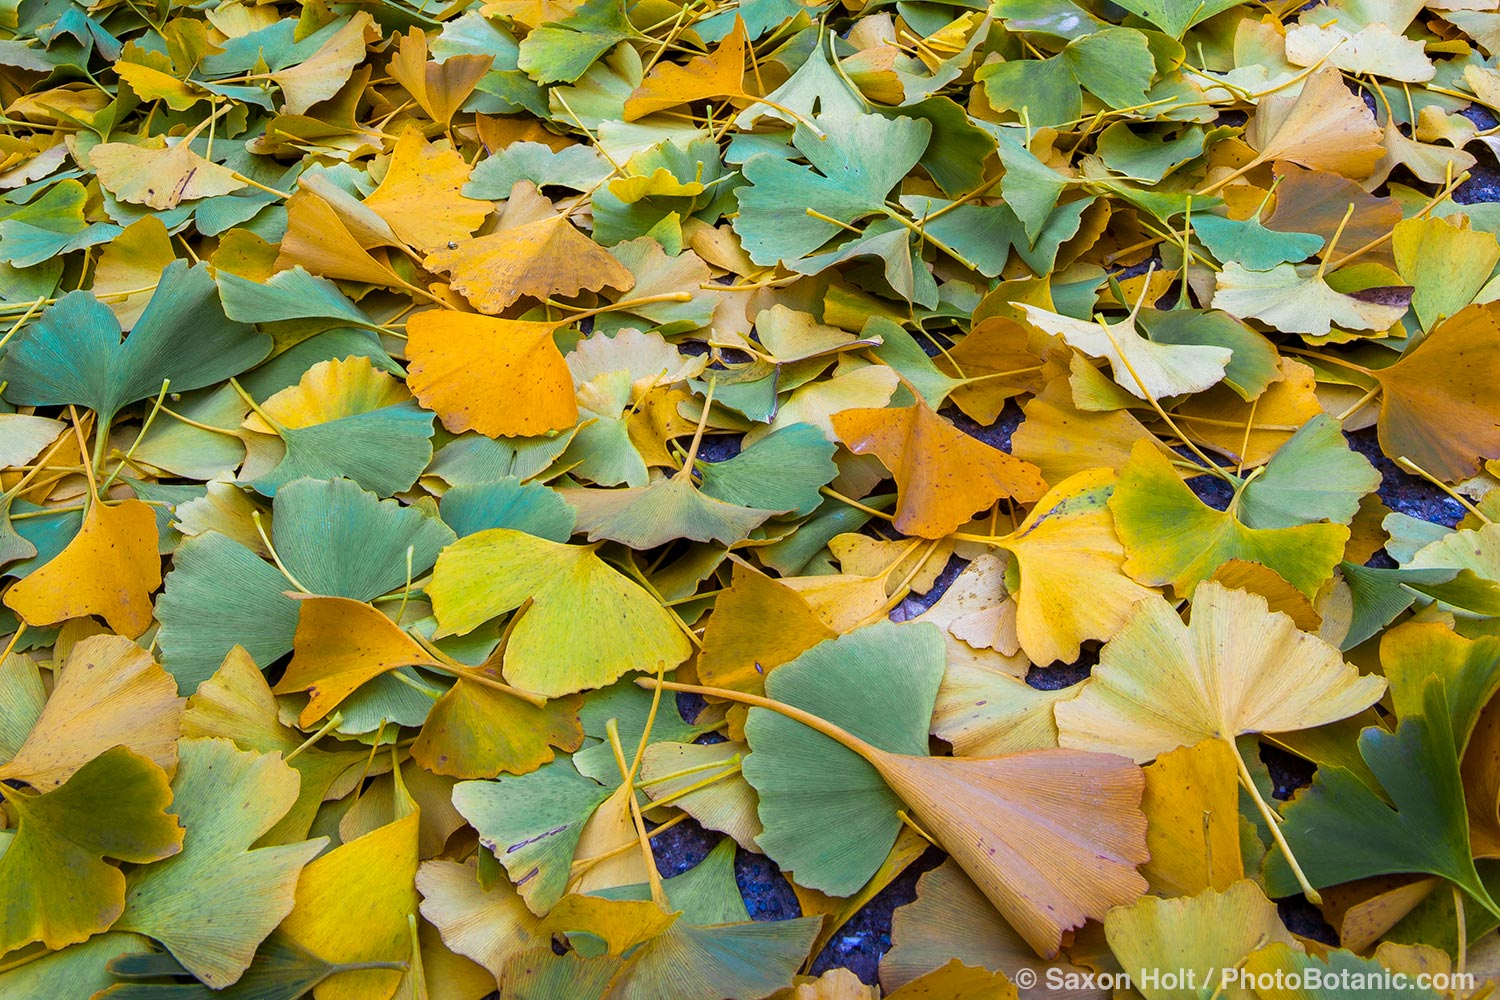 Green and gold Ginkgo biloba tree leaves on ground in autumn.